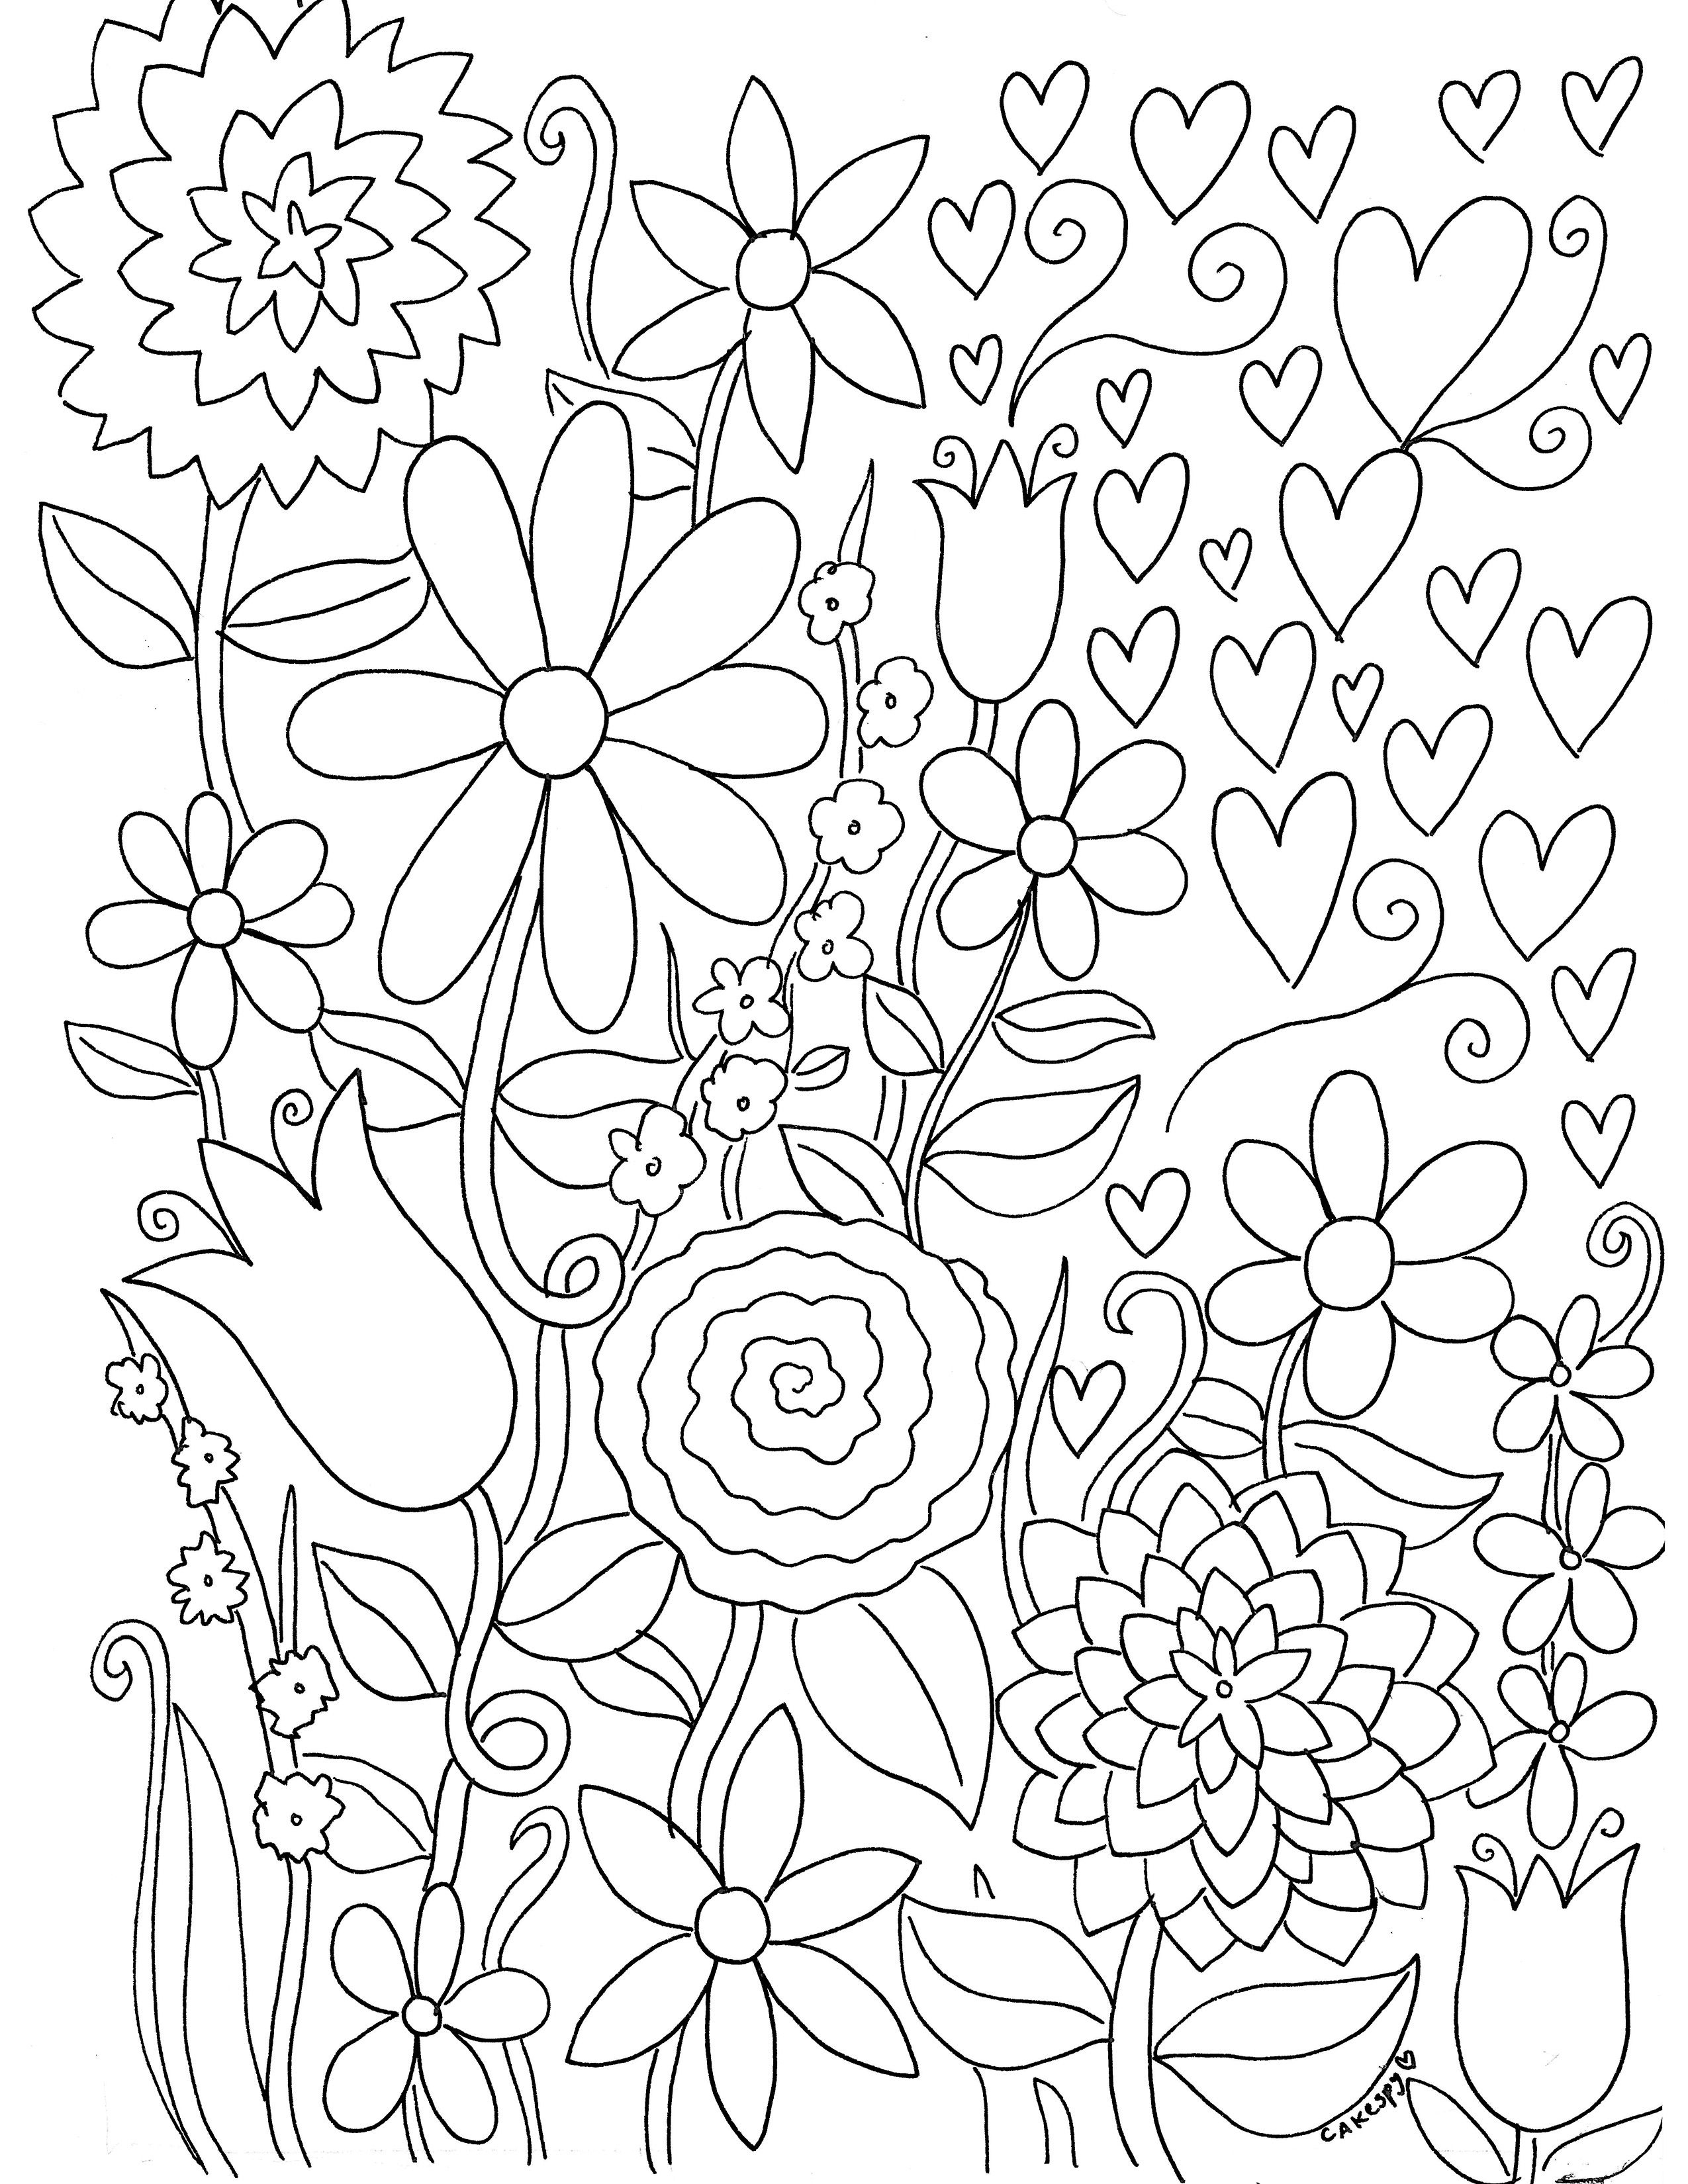 Free Paintnumbers For Adults Downloadable | *printable Art - Free Printable Coloring Book Pages For Adults